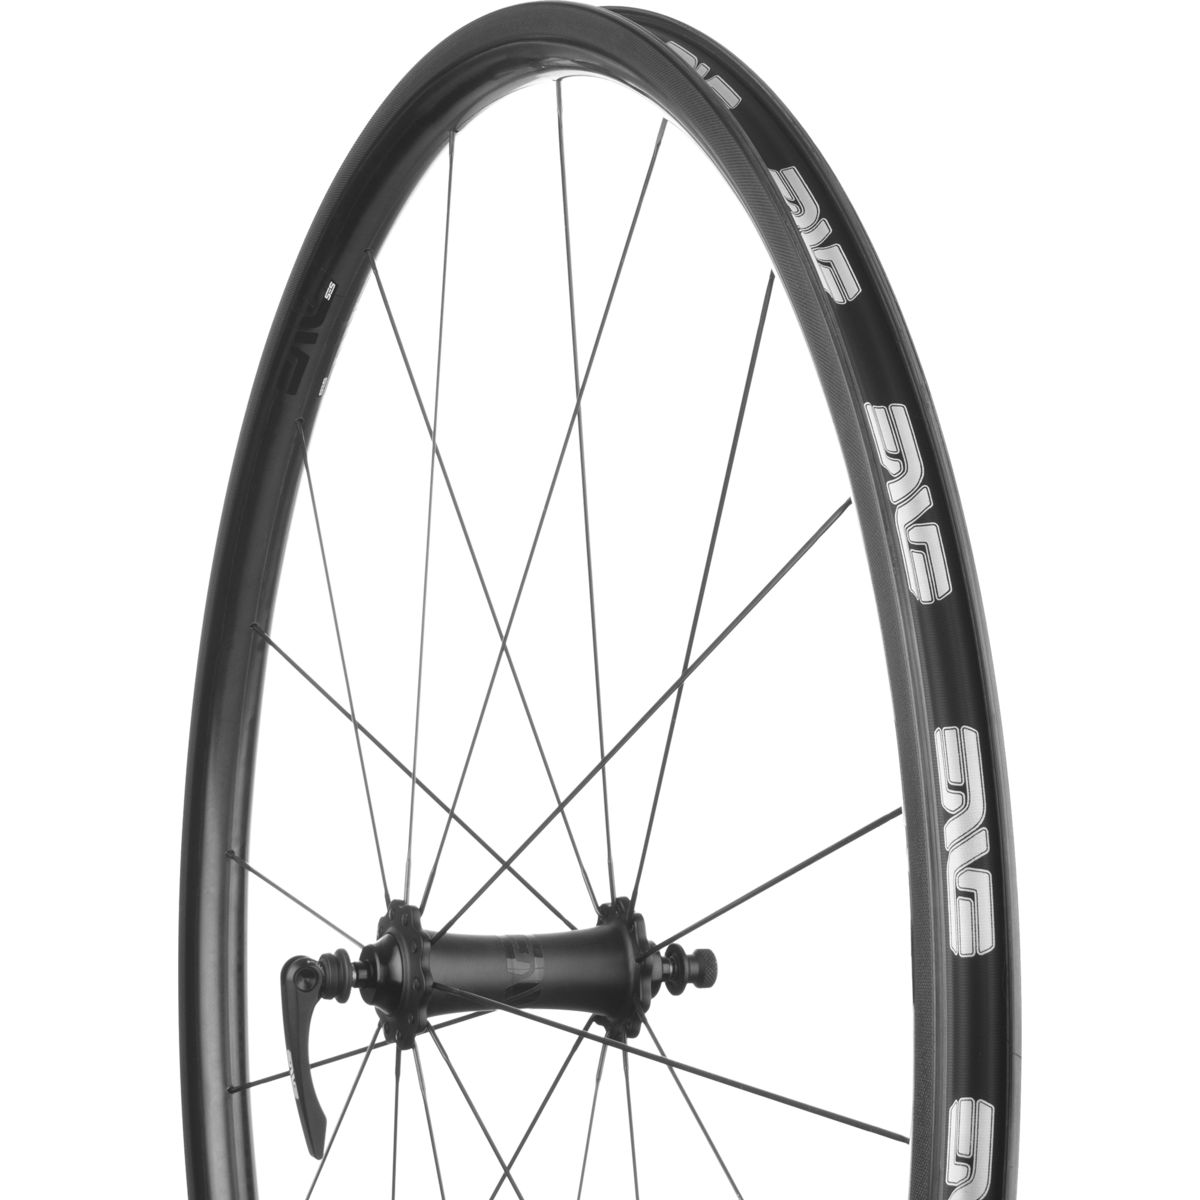 ENVE SES 2.2 Wheelset ENVE Hubs Clincher Black Campagnolo 11-Speed Ceramic Bearings